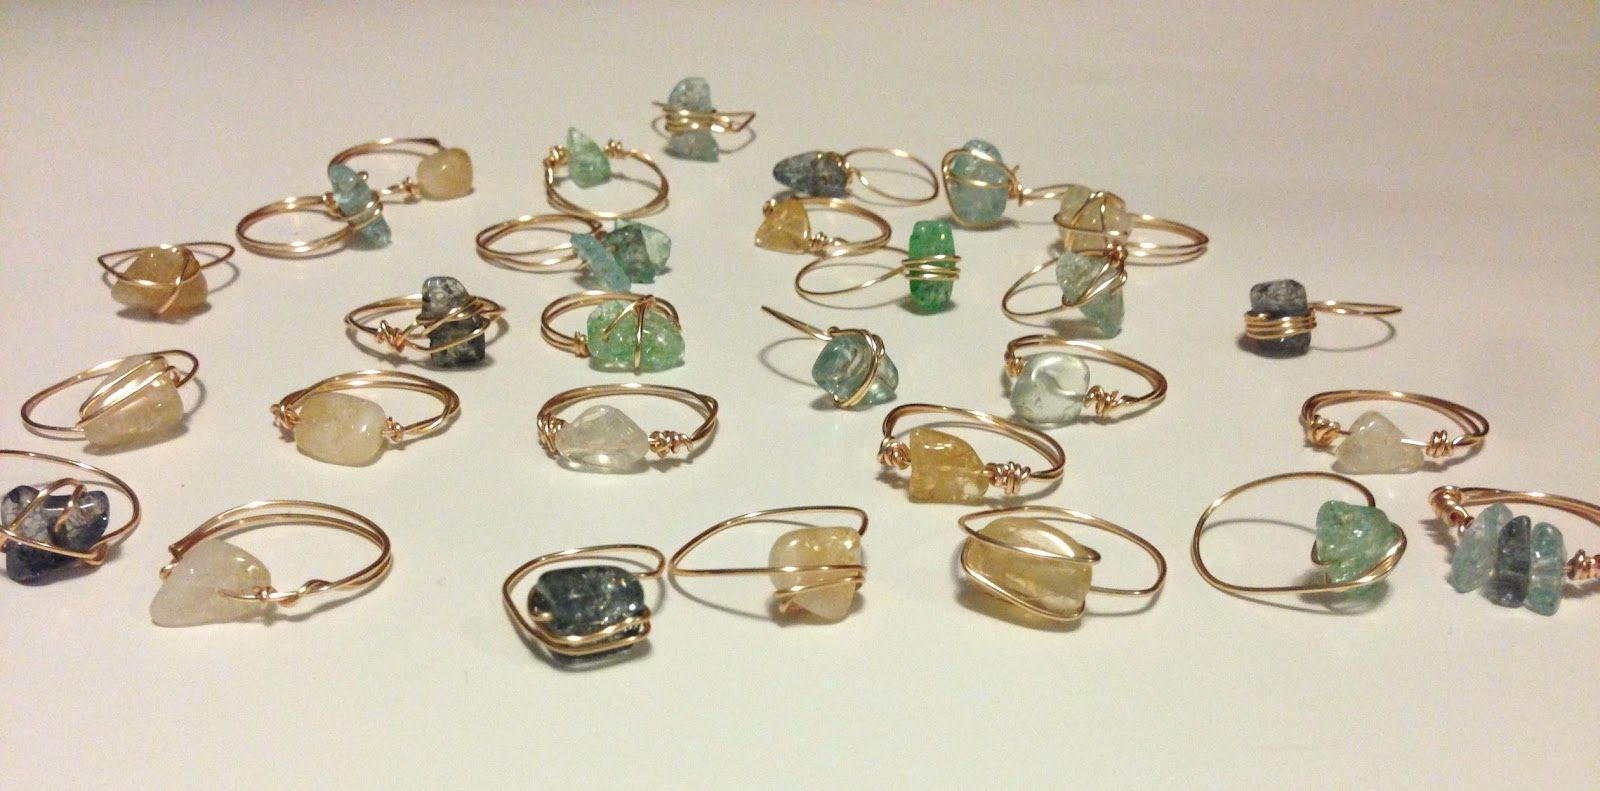 Charming How To Make A Wire Ring With Beads Pictures Inspiration ...